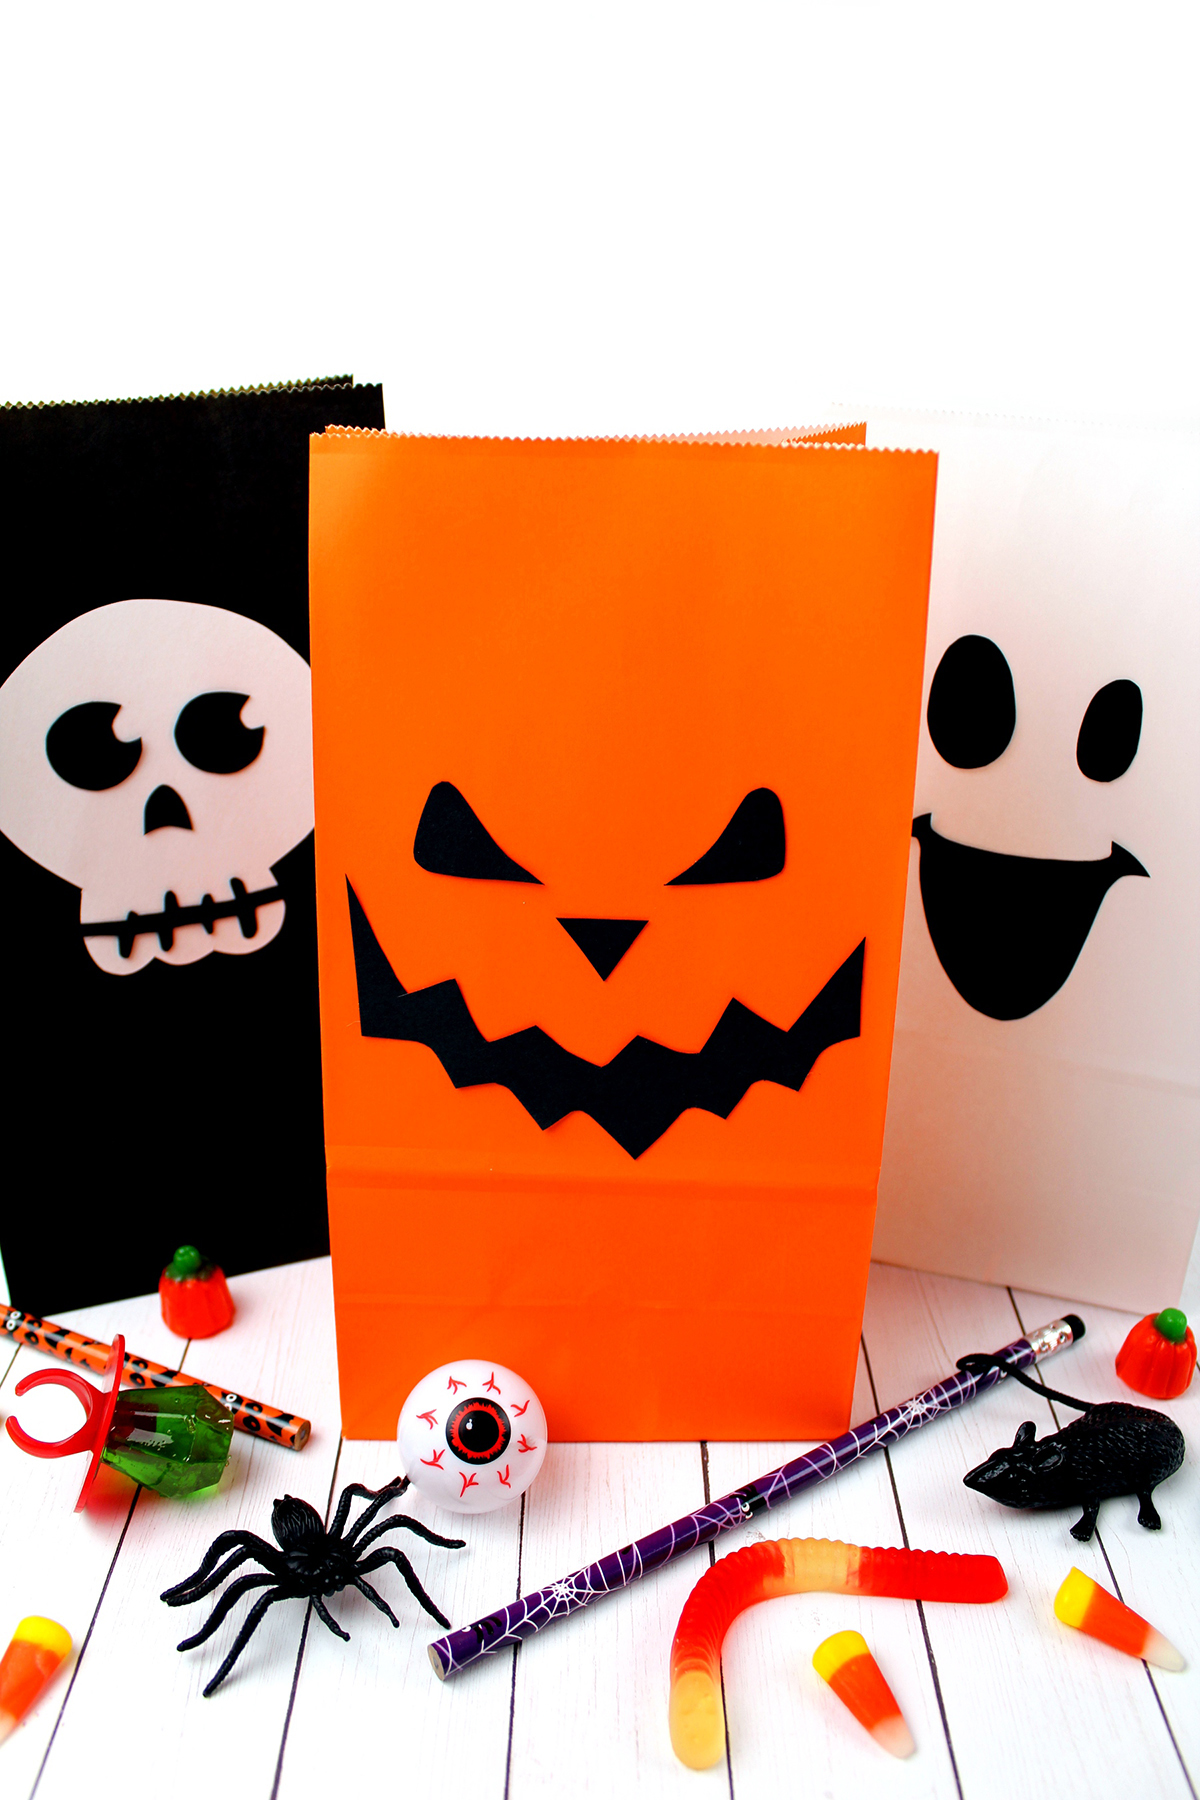 Diy Halloween Trick Or Treat Bags.Spooky Diy Halloween Treat Bags Craft Extreme Couponing Mom